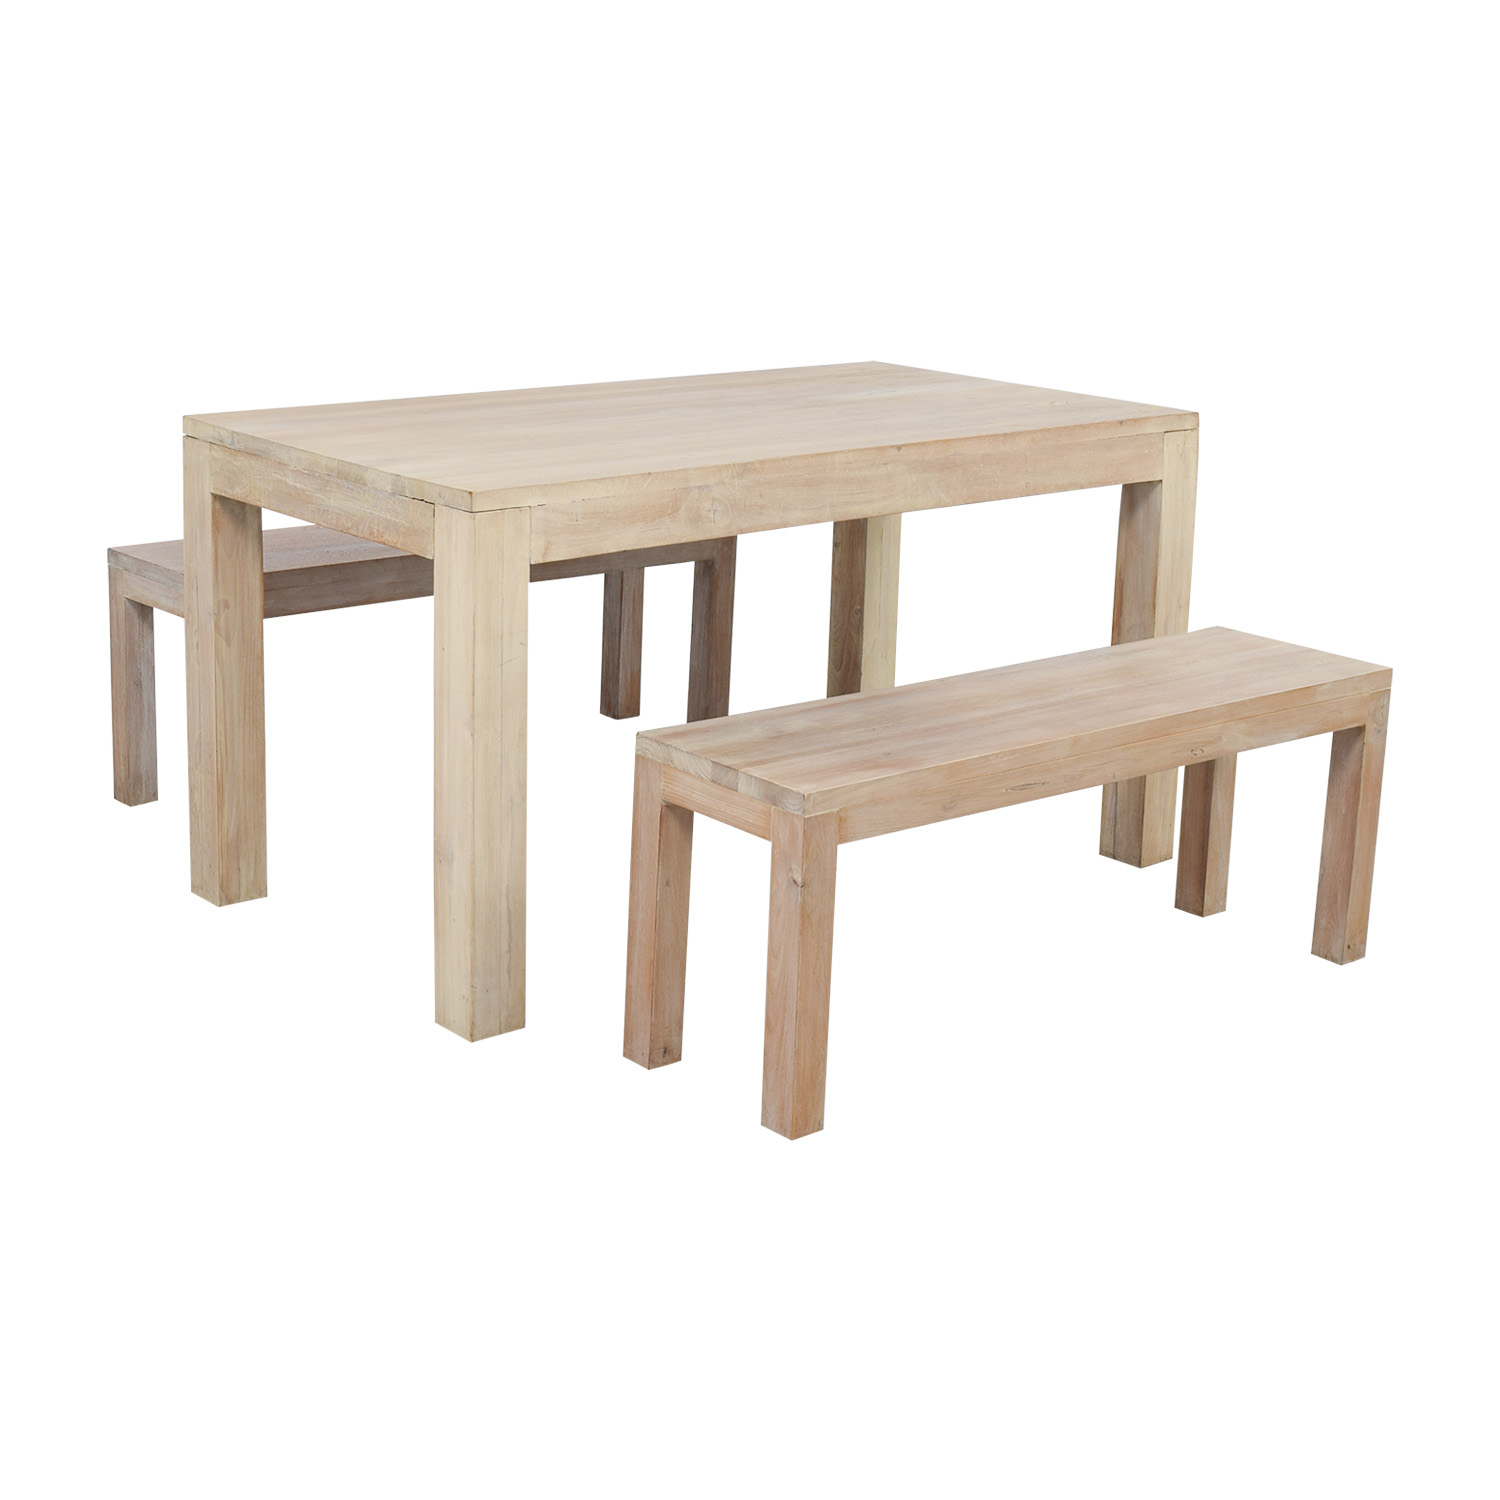 TREE Hong Kong TREE Hong Kong Reclaimed Raw Oak Wood Dining Table with Benches dimensions